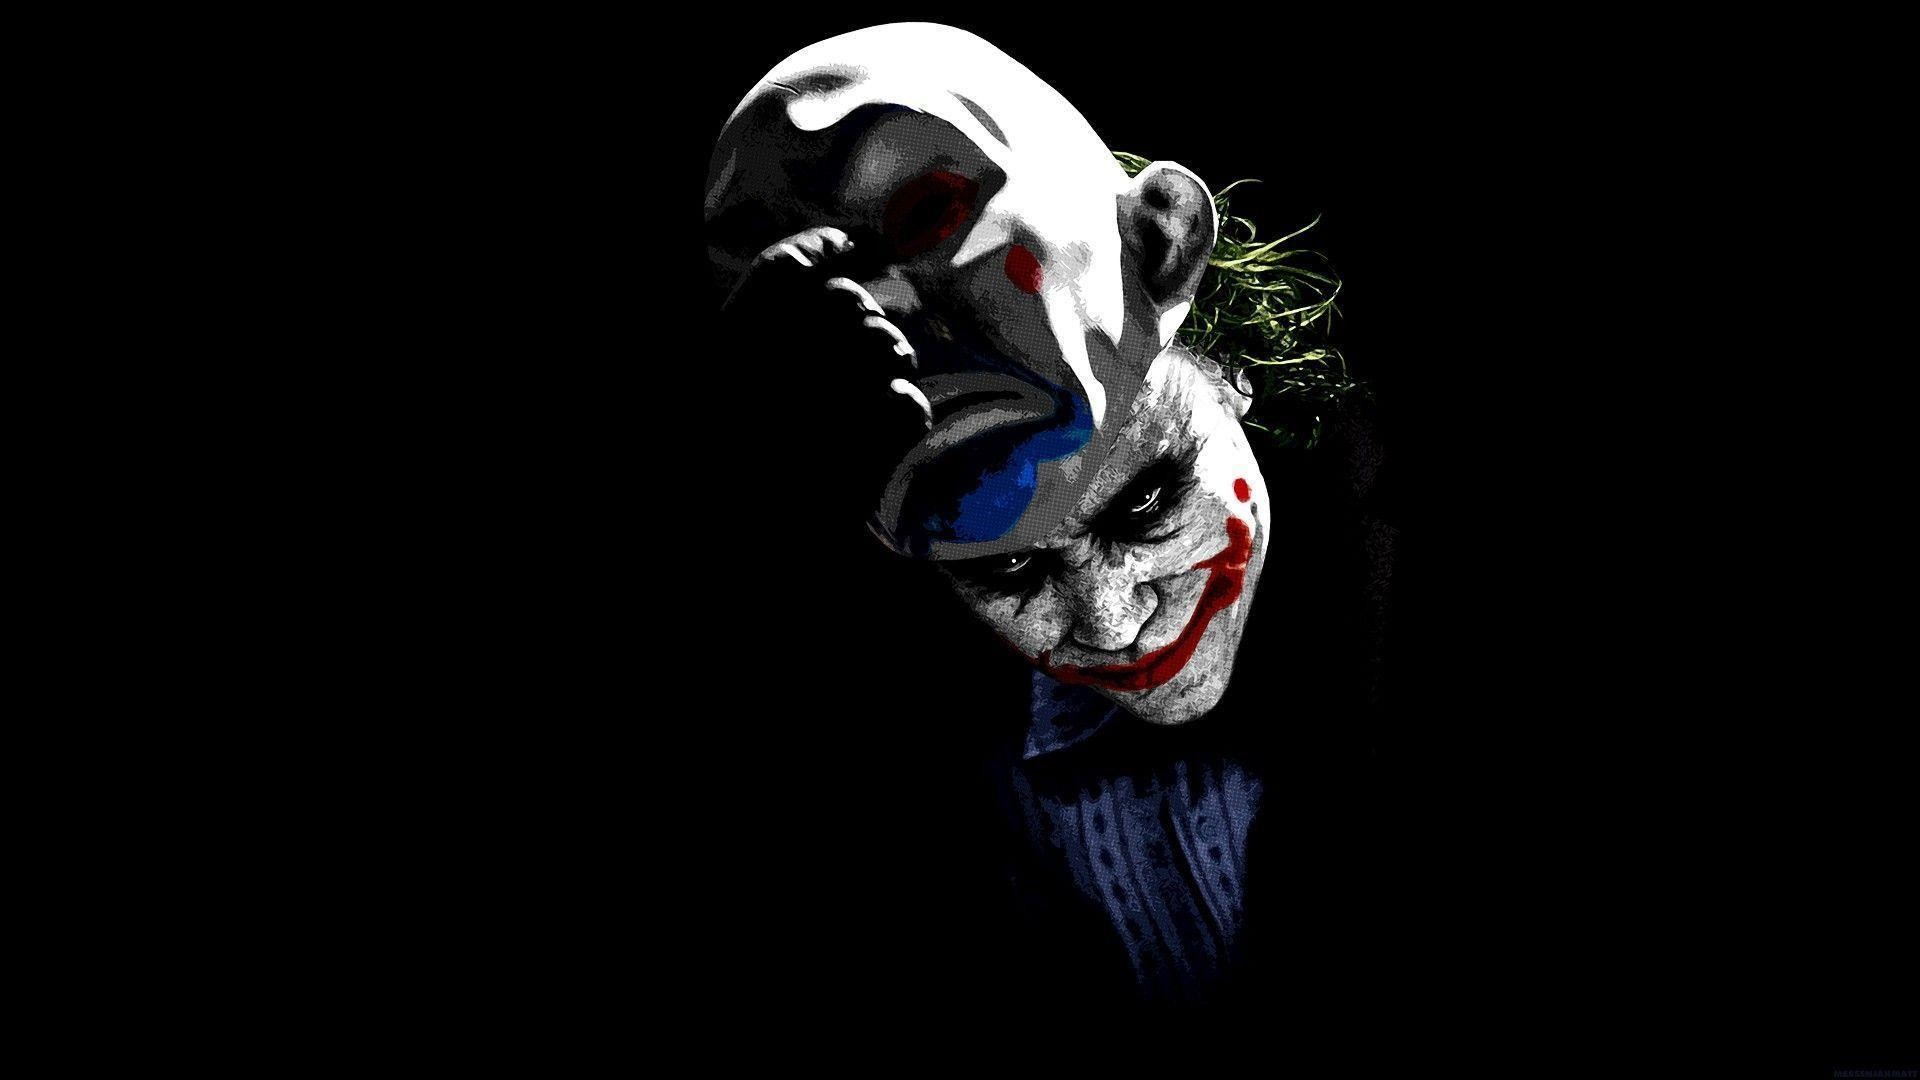 Scary Clowns & Creepy Clowns HD Wallpaper